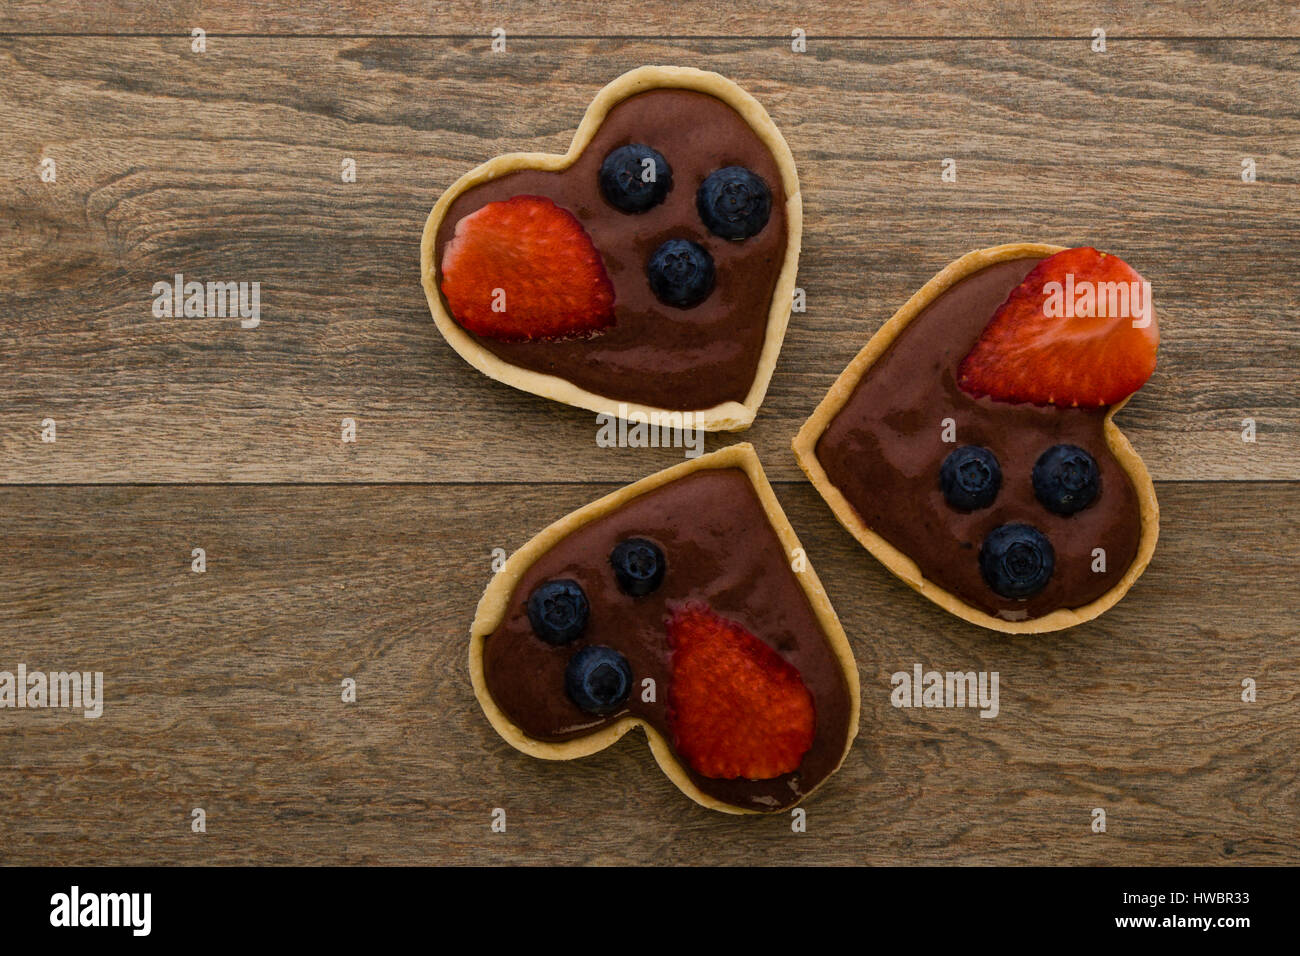 heart shape chocolate tart with strawberry and blueberry - Stock Image